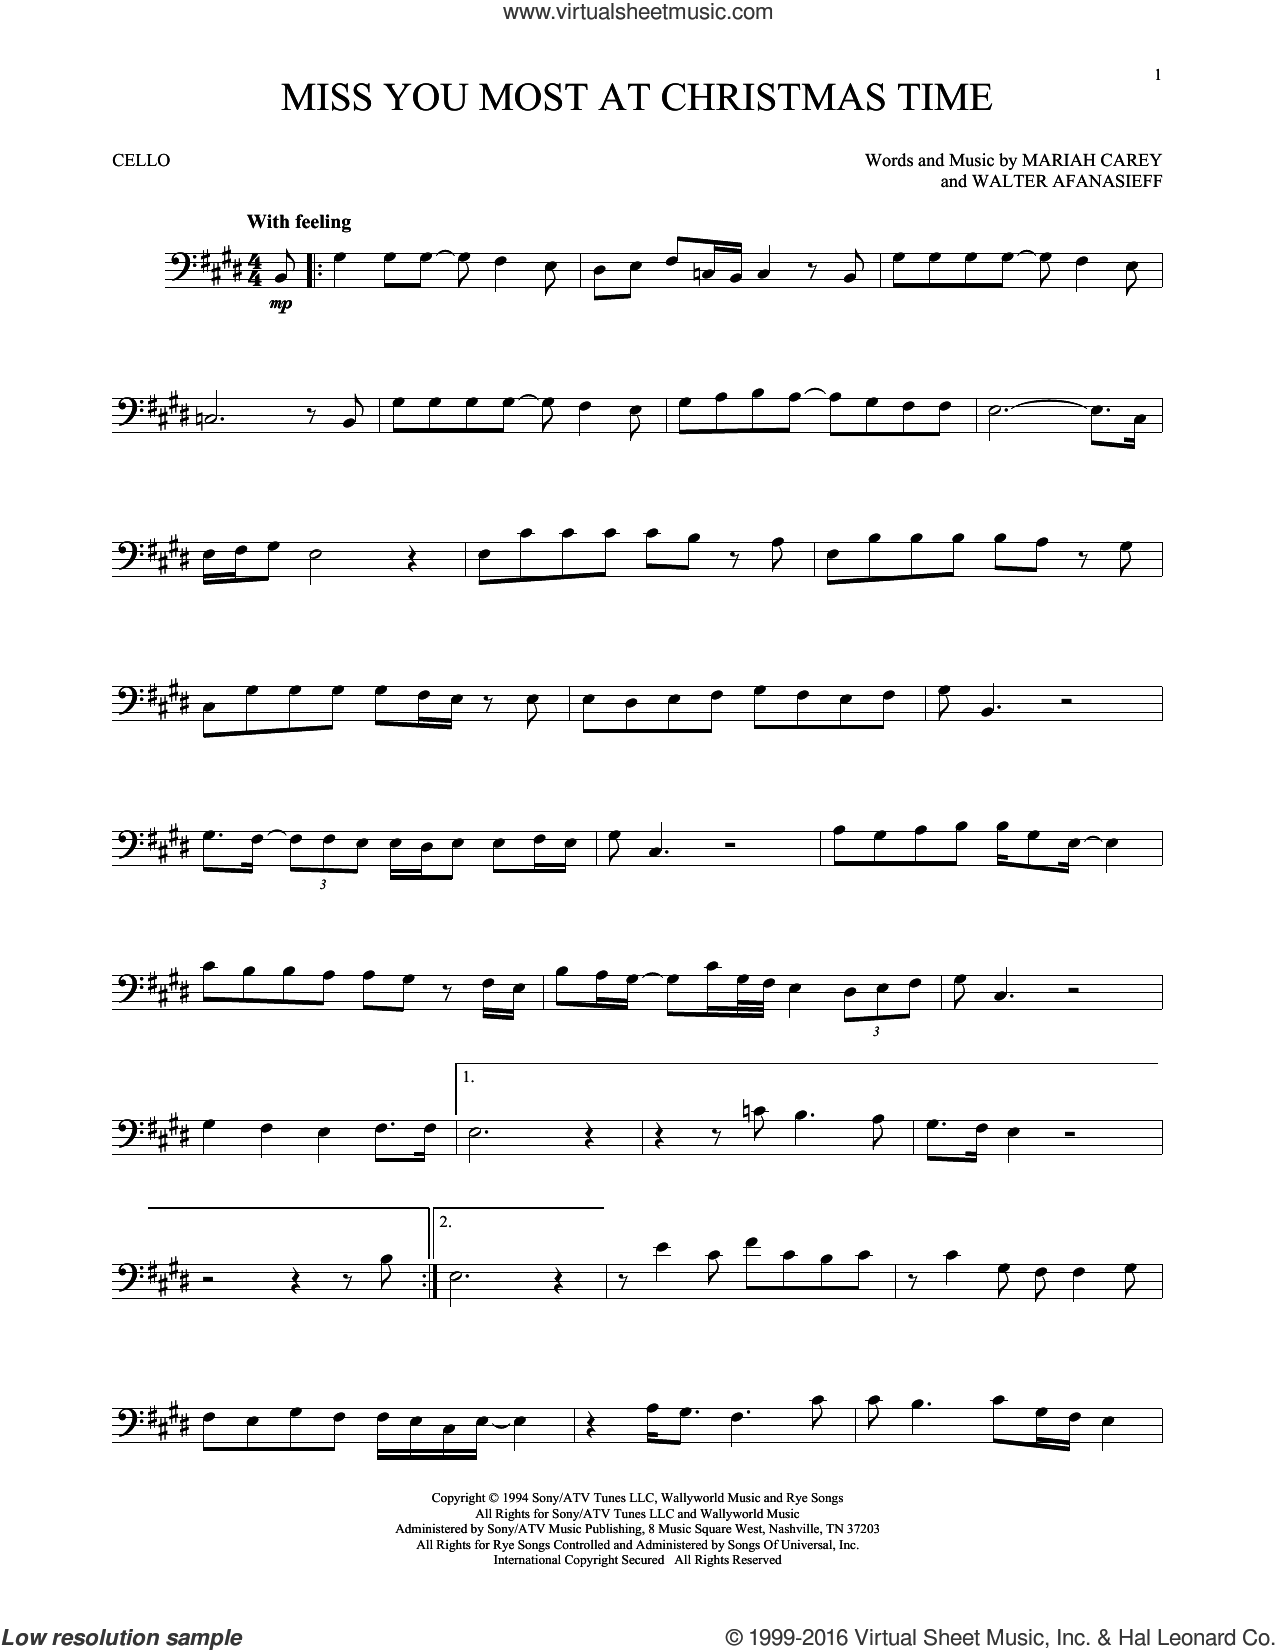 Miss You Most At Christmas Time sheet music for cello solo by Mariah Carey and Walter Afanasieff, intermediate skill level